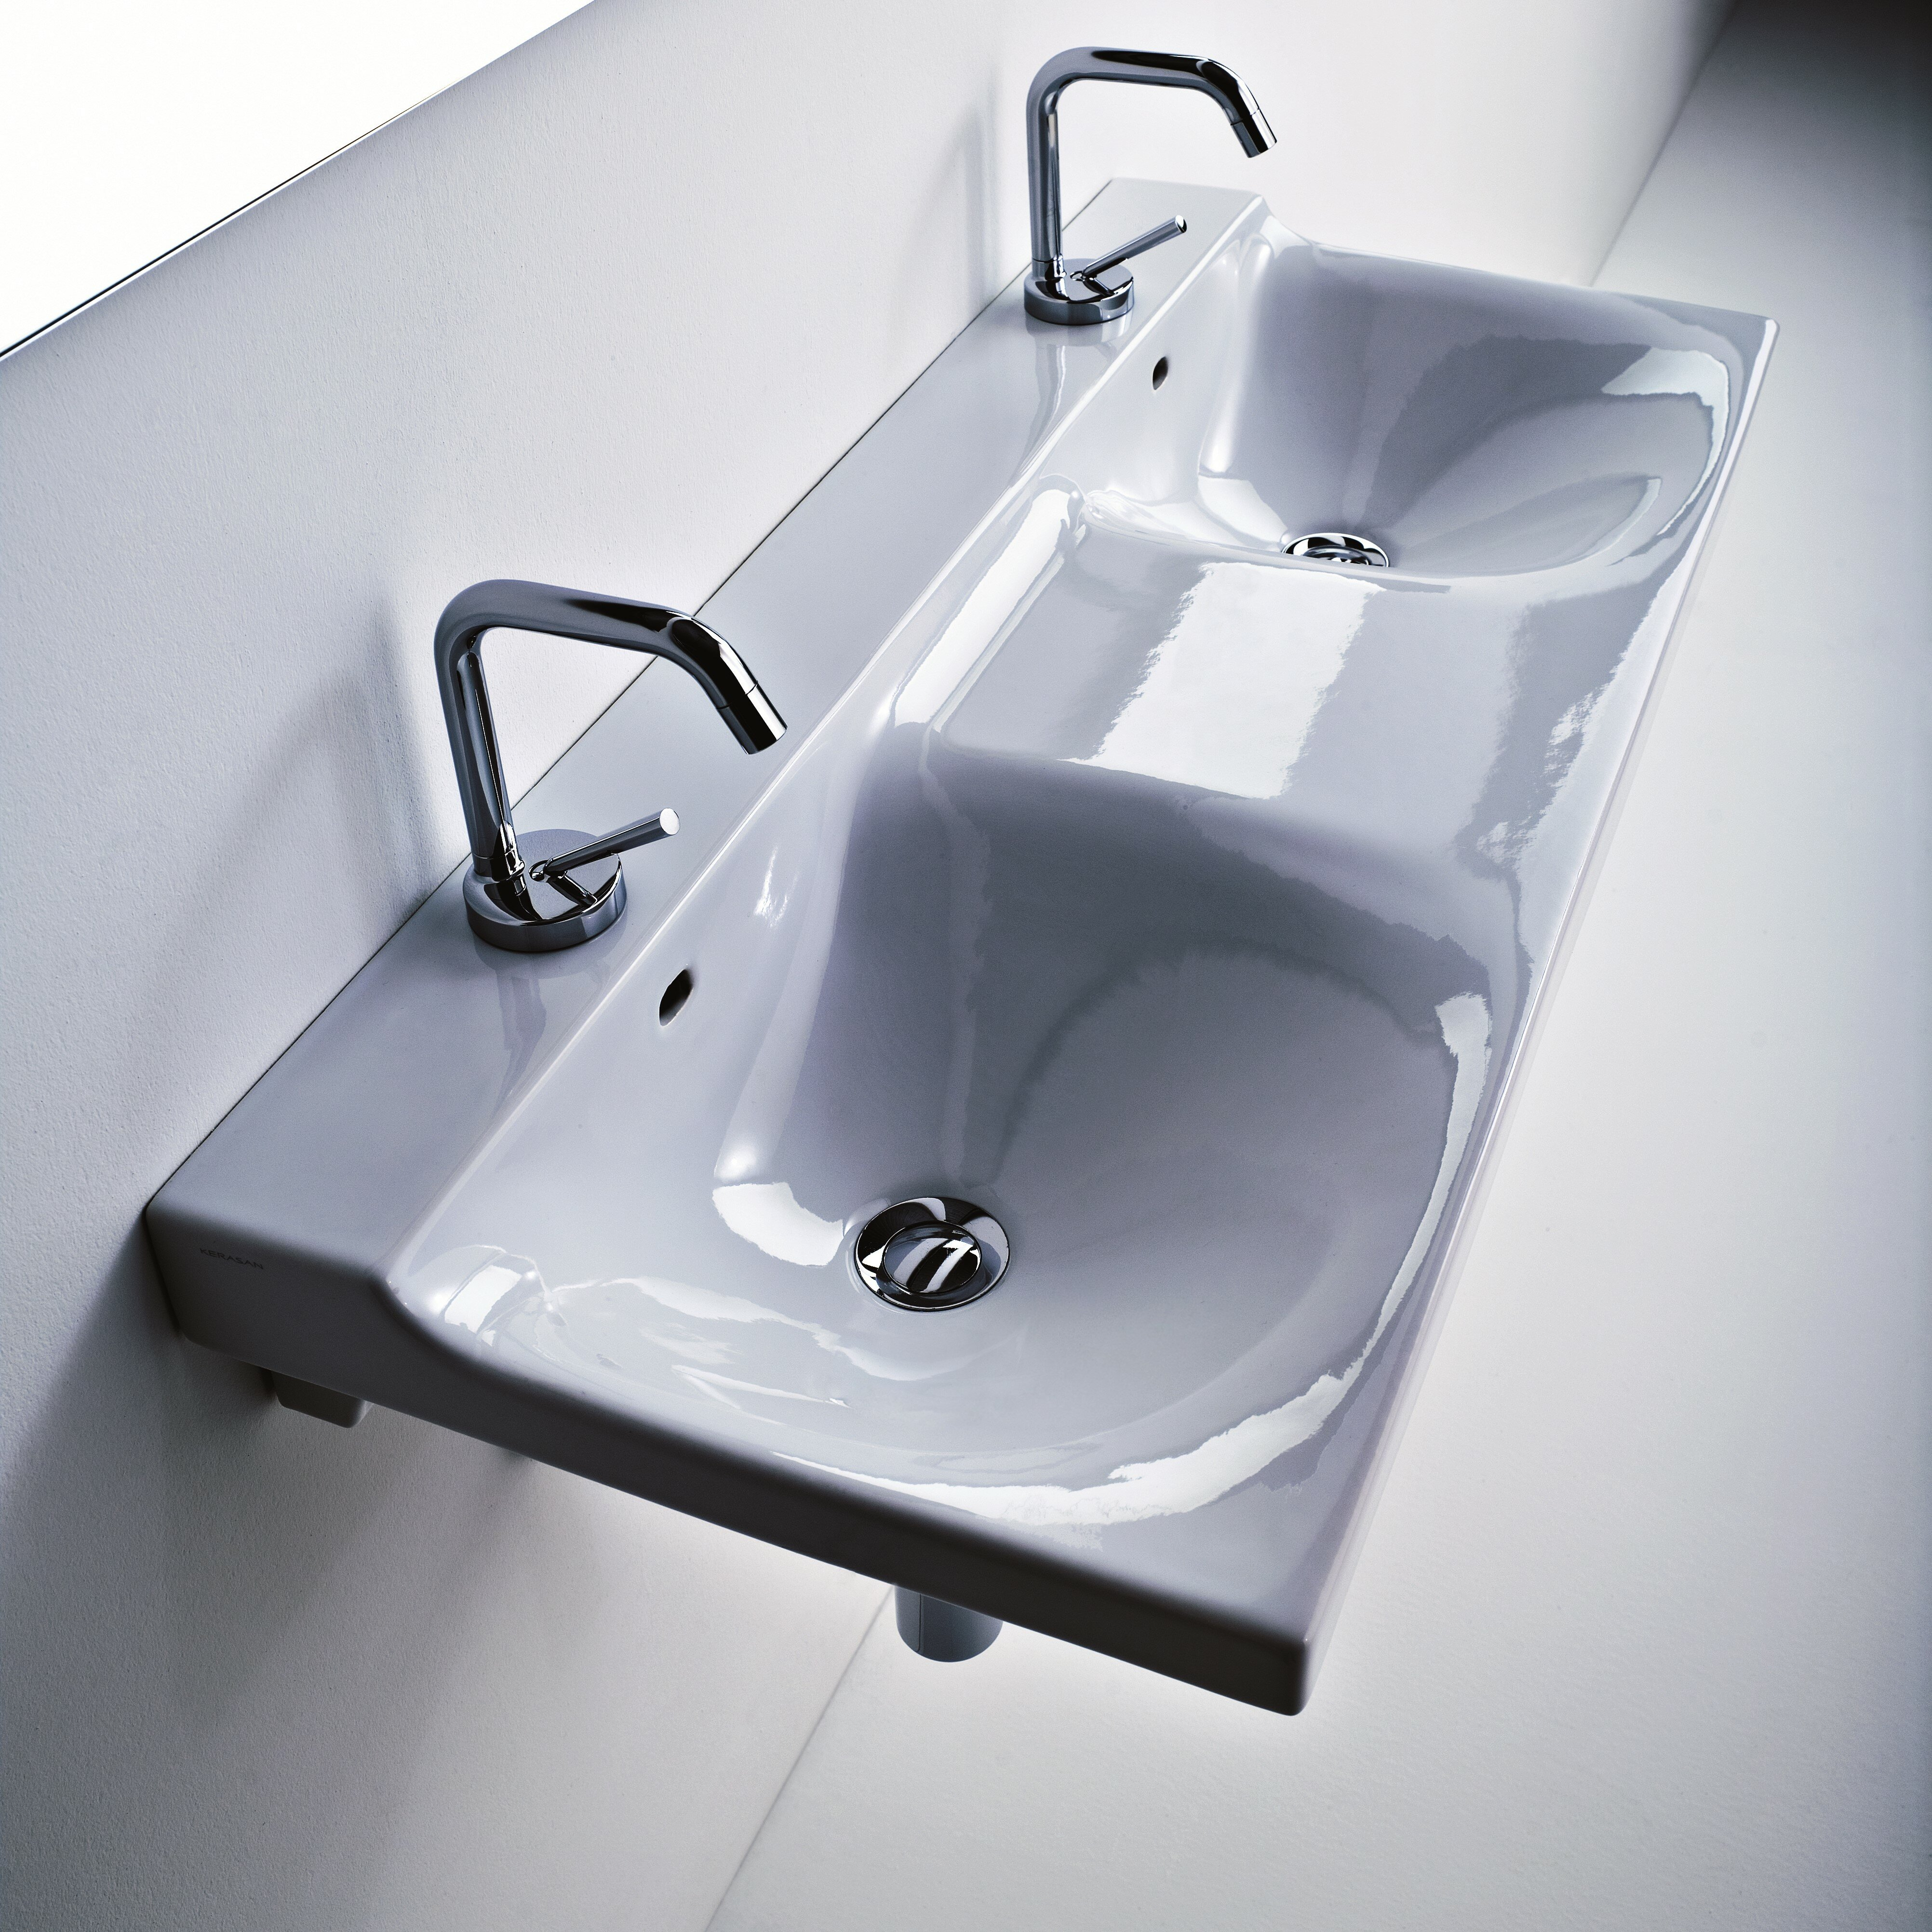 Buddy Ceramic Wall Mounted Double Bathroom Sink by WS Bath Collections